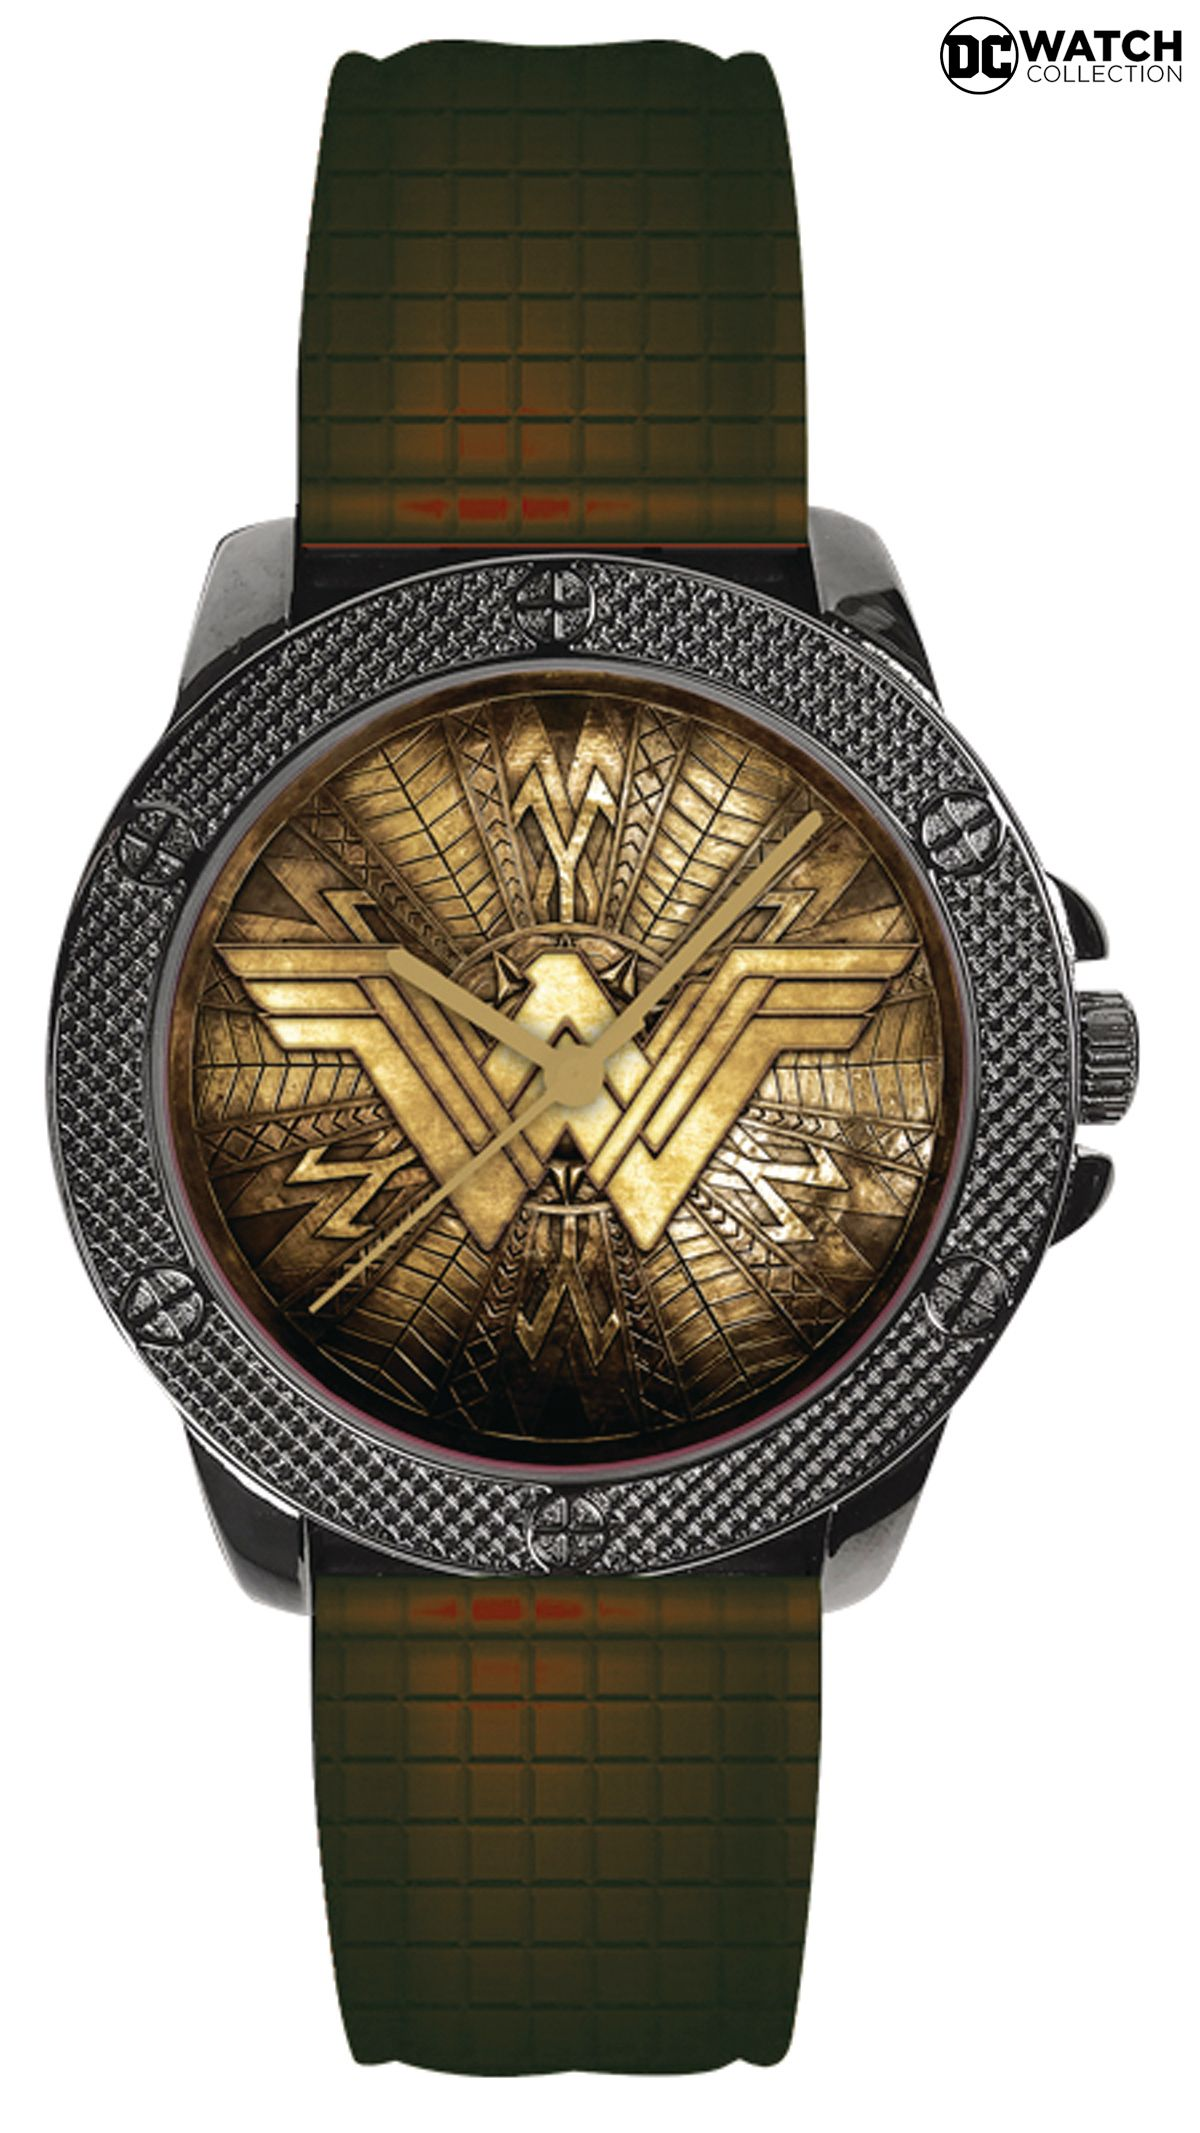 Relogio-Mulher-Maravilha-Wonder-Woman-Movie-Watch-DC-Comics-Watch-Collection-02